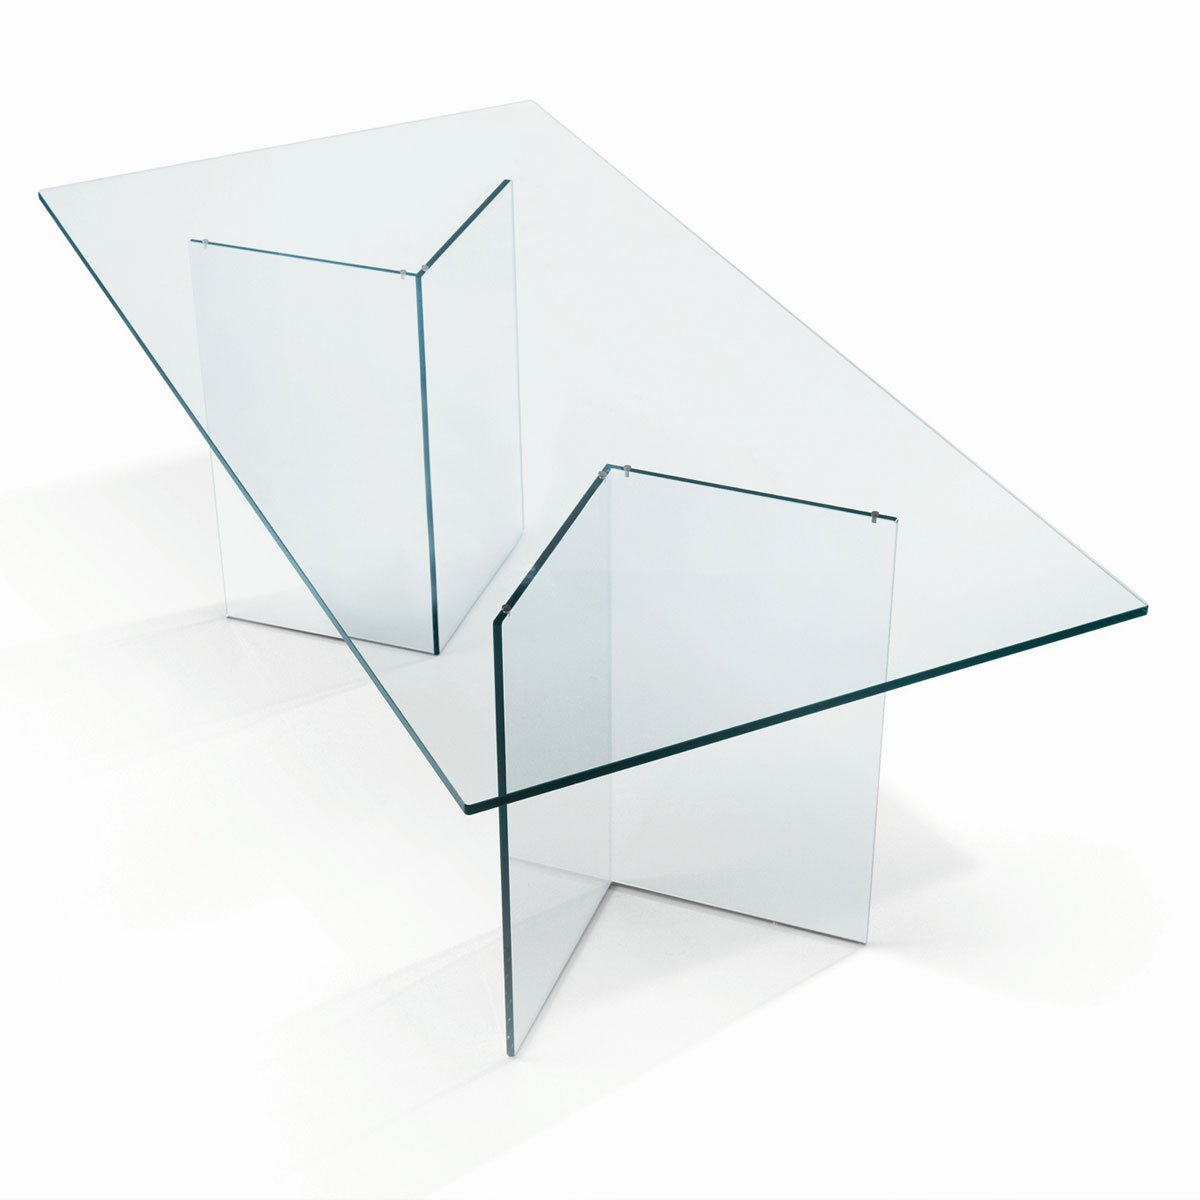 Tonelli Bacco Glass Dining Table Klarity Glass Furniture : Glass dining table bacco 01 from glassfurniture.co.uk size 1200 x 1200 jpeg 18kB